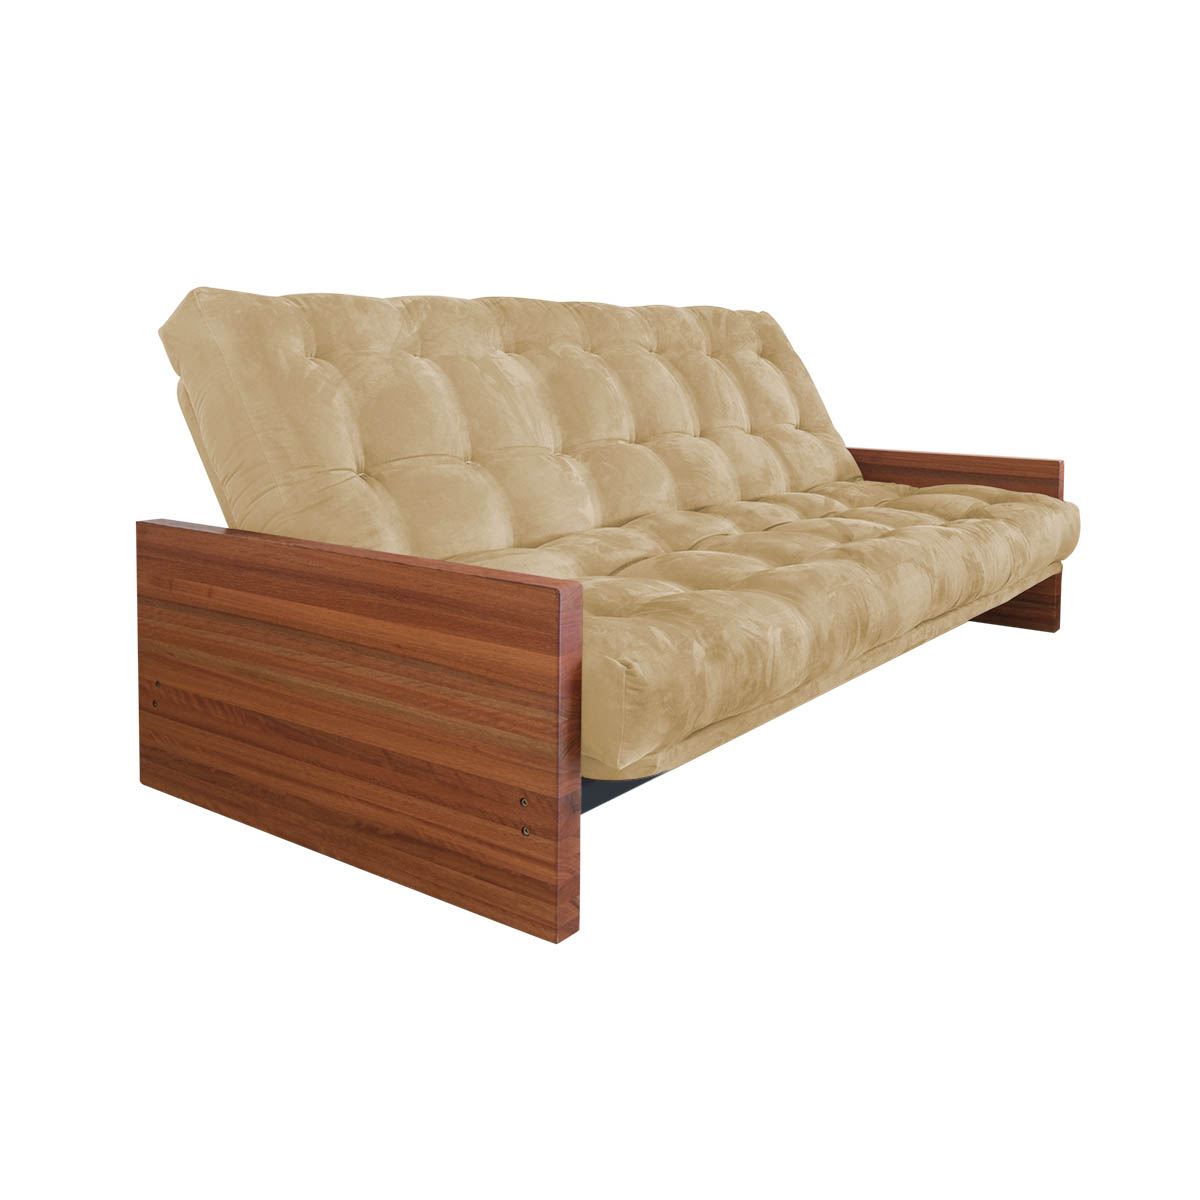 Suede chaise sof de canto 6 lugares com chaise astor for Chaise lounge cama